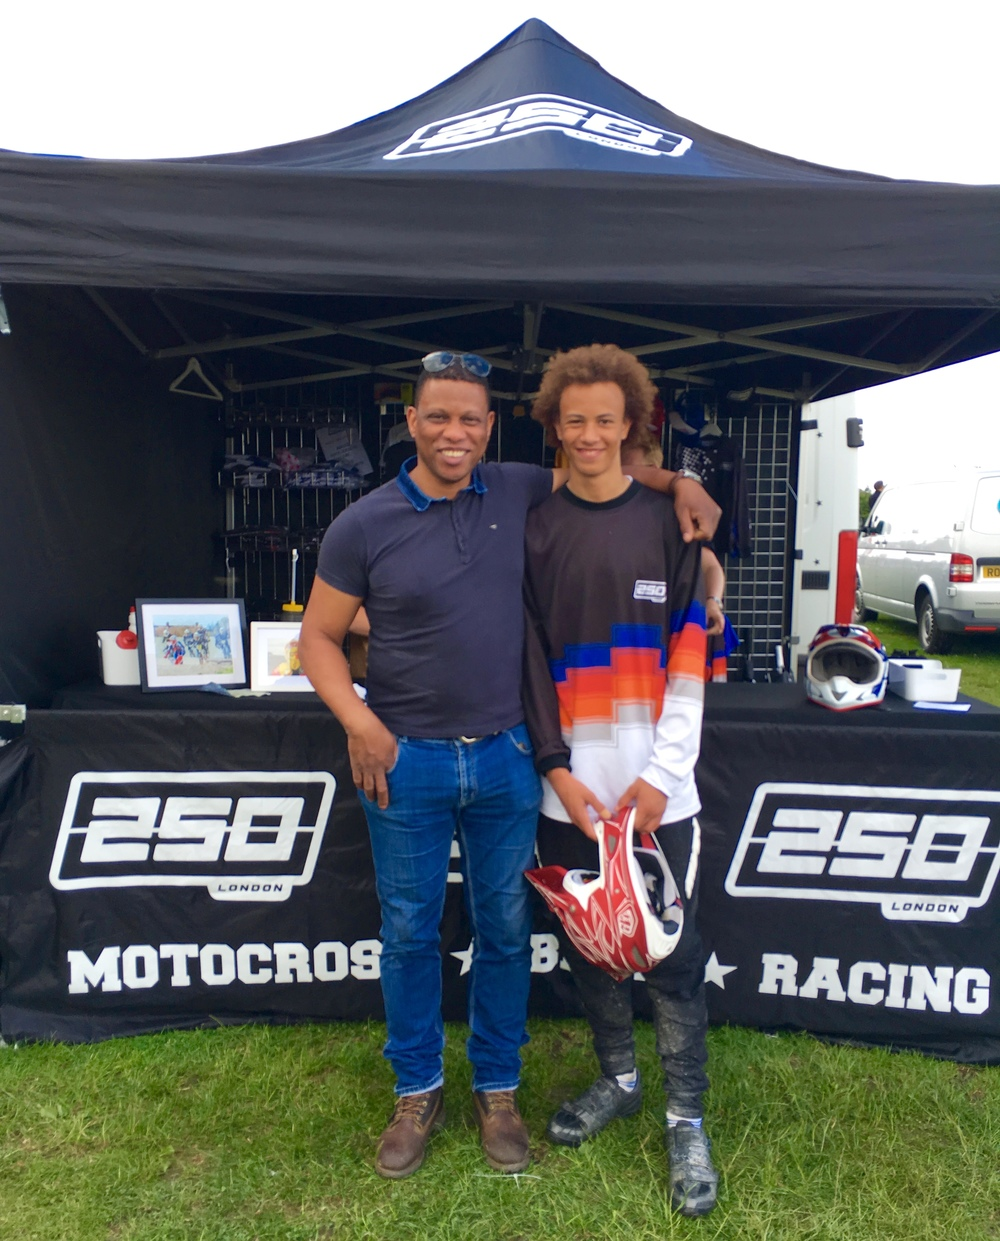 250LONDON Team Rider, Jason Daley, with his proud dad Michael